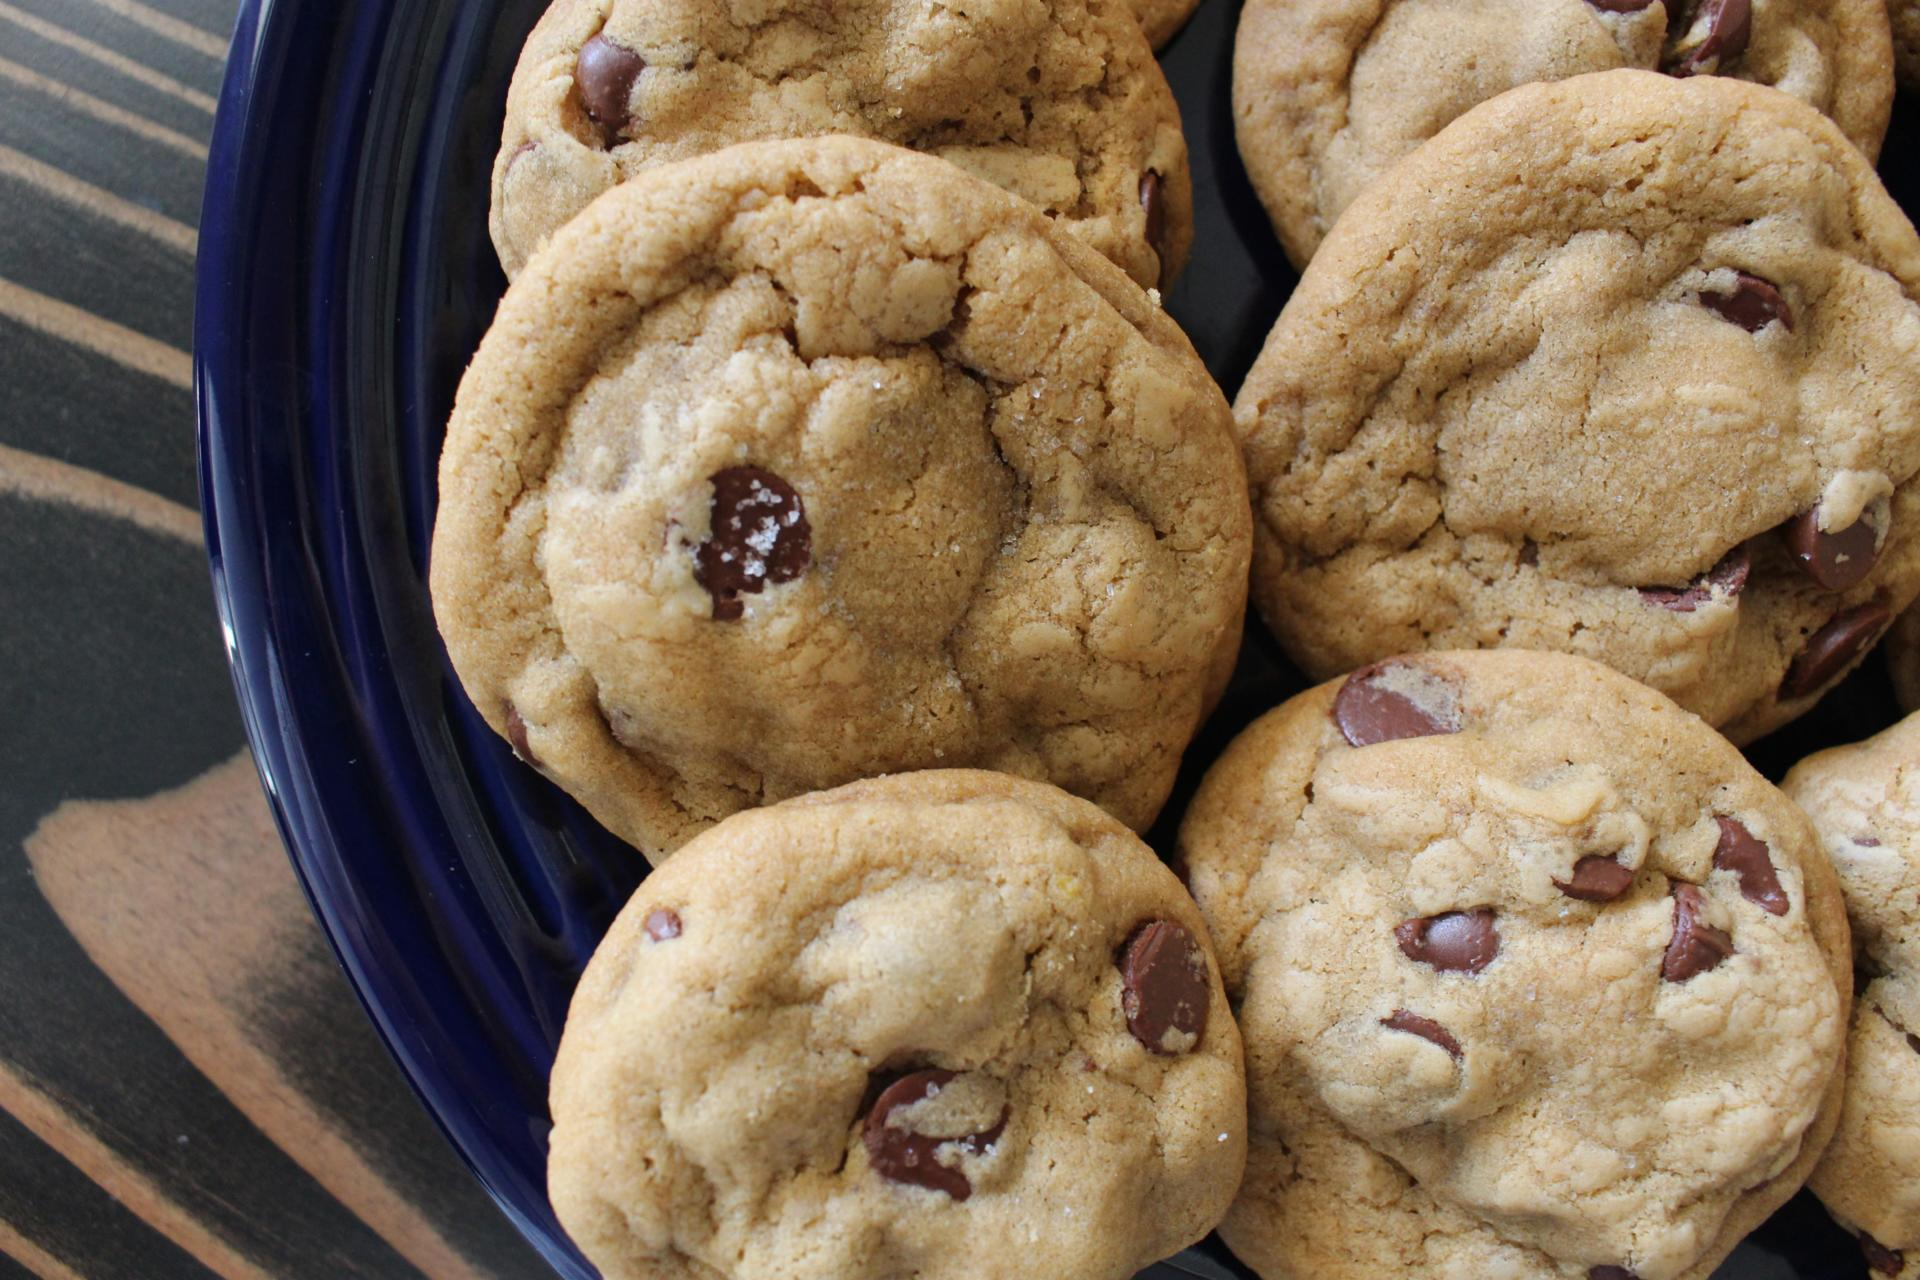 BAKE ME: Sea Salt Coconut Oil Chocolate Chip Cookies